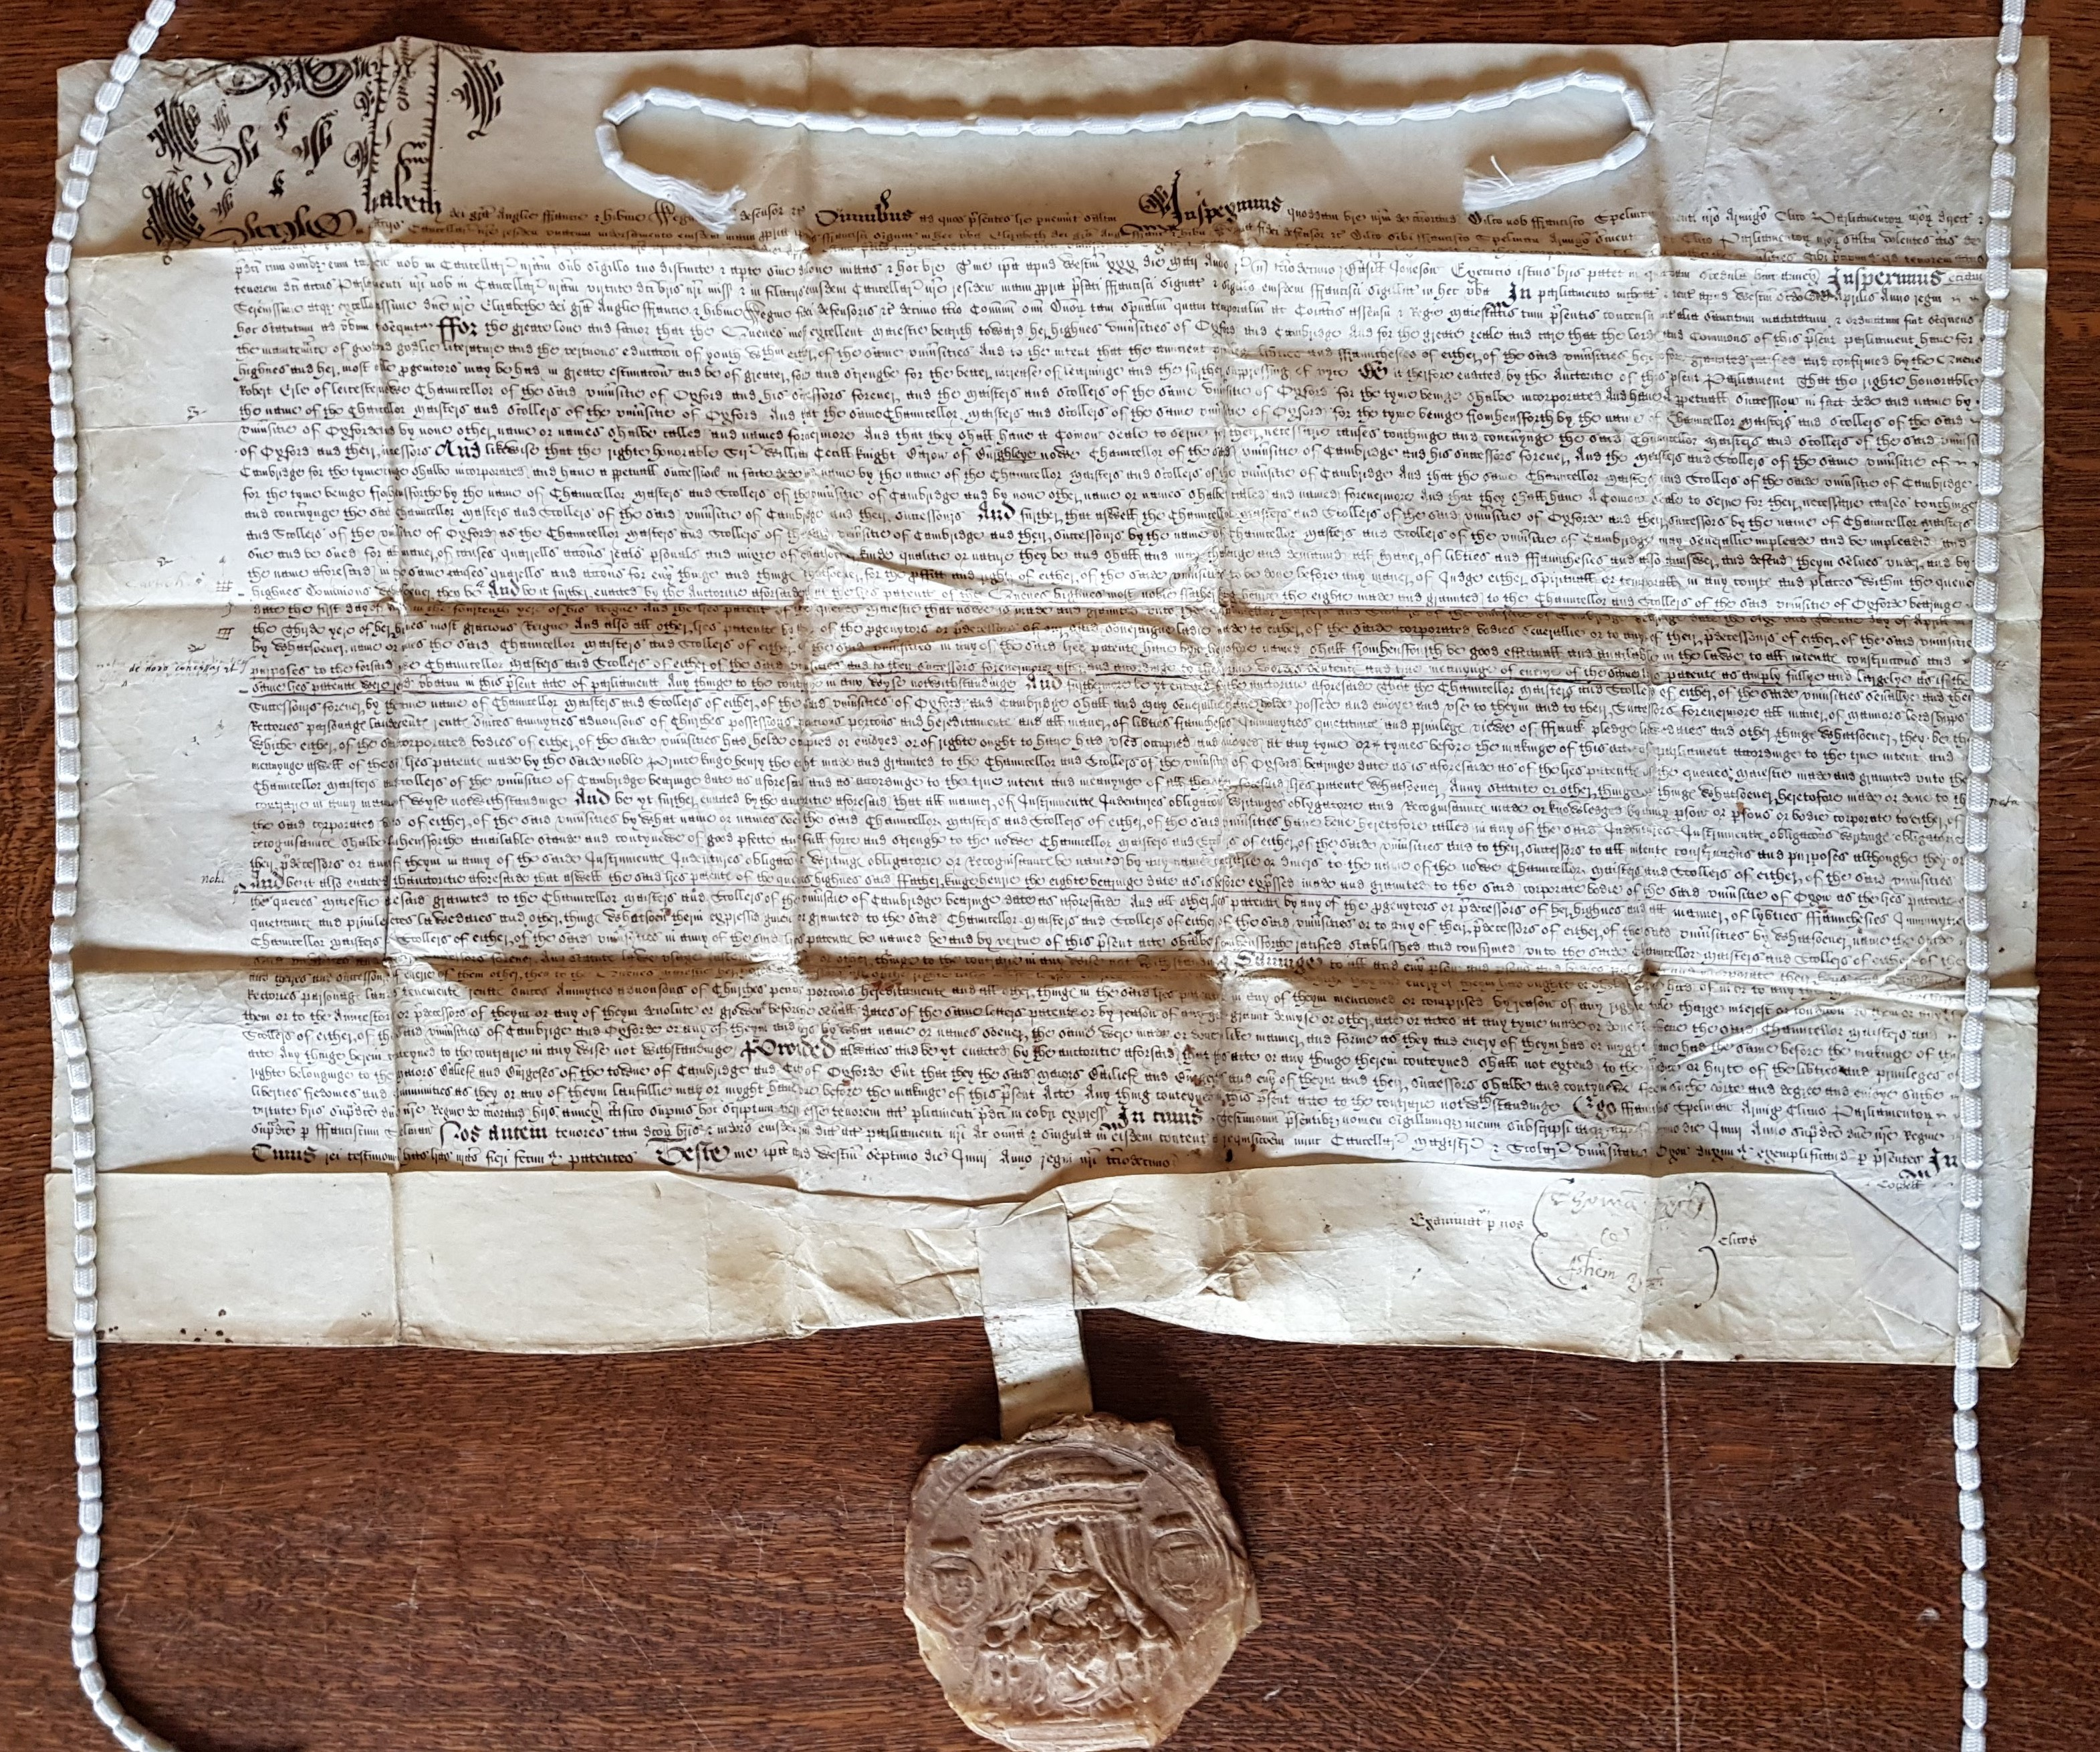 Exemplification of the Act of 1571